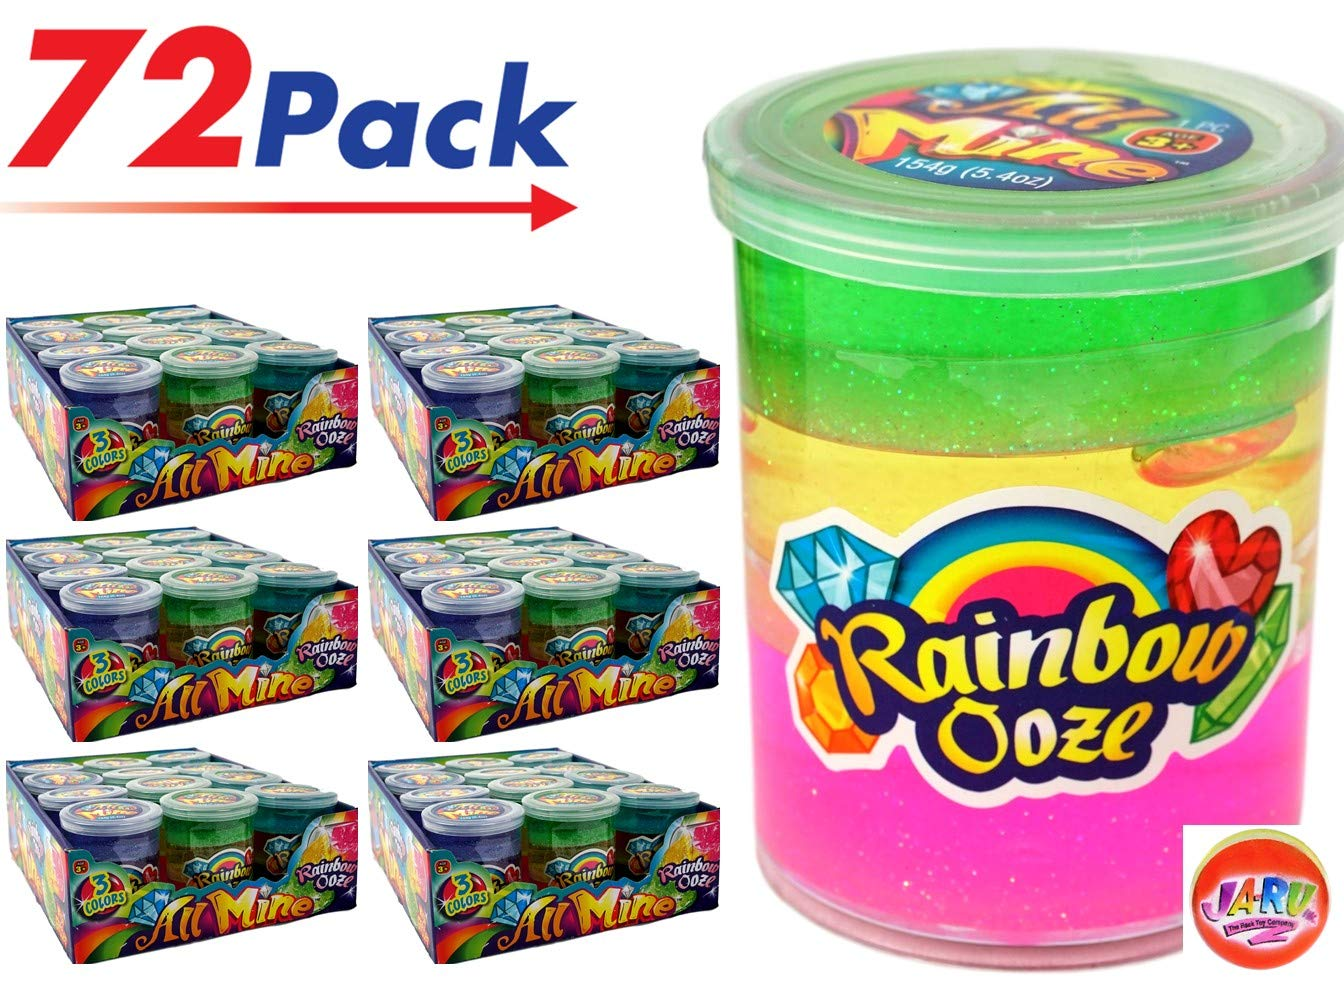 JA-RU Rainbow Putty Slime Kit Neon Glitter Colors (72 Units) Unicorn Party Girls Game. Slime Squishy and Stretchy. Arts and Crafts for Girls Party Favor Toy Supplies | Item #4634-72p